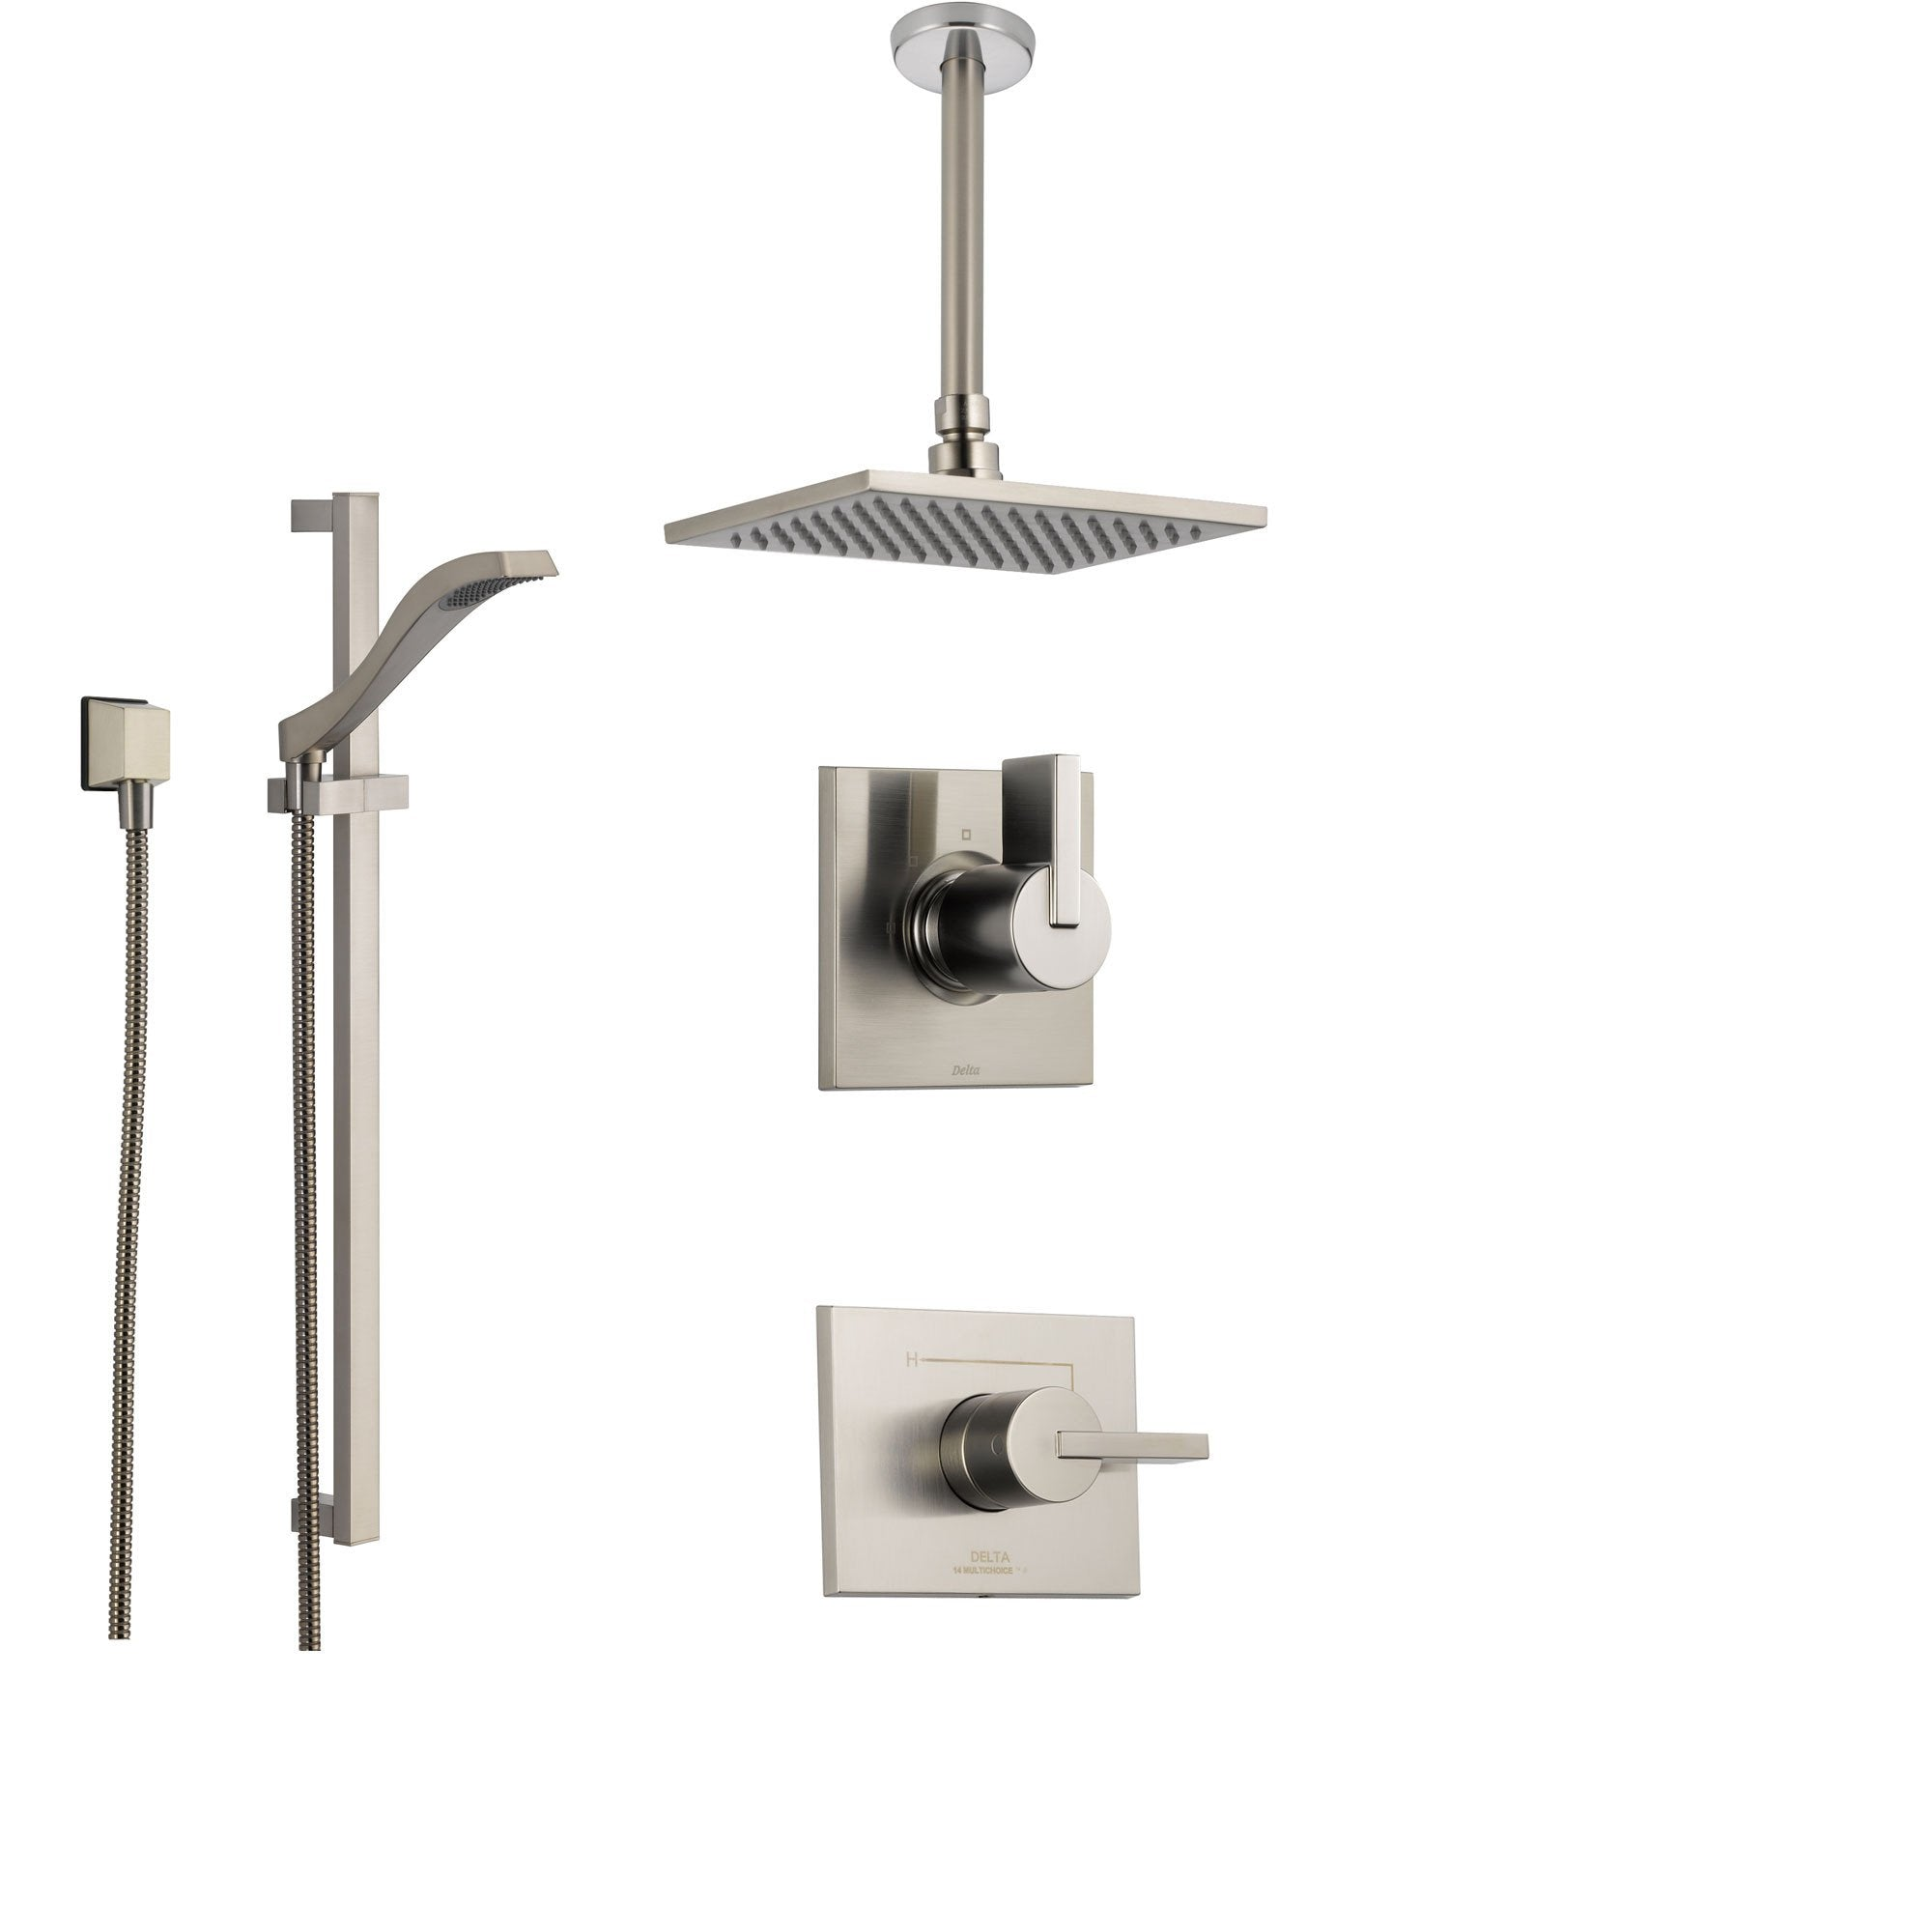 Delta Vero Stainless Steel Shower System with Normal Shower Handle, 3-setting Diverter, Large Square Rain Ceiling Mount Showerhead, and Handheld Shower SS145383SS